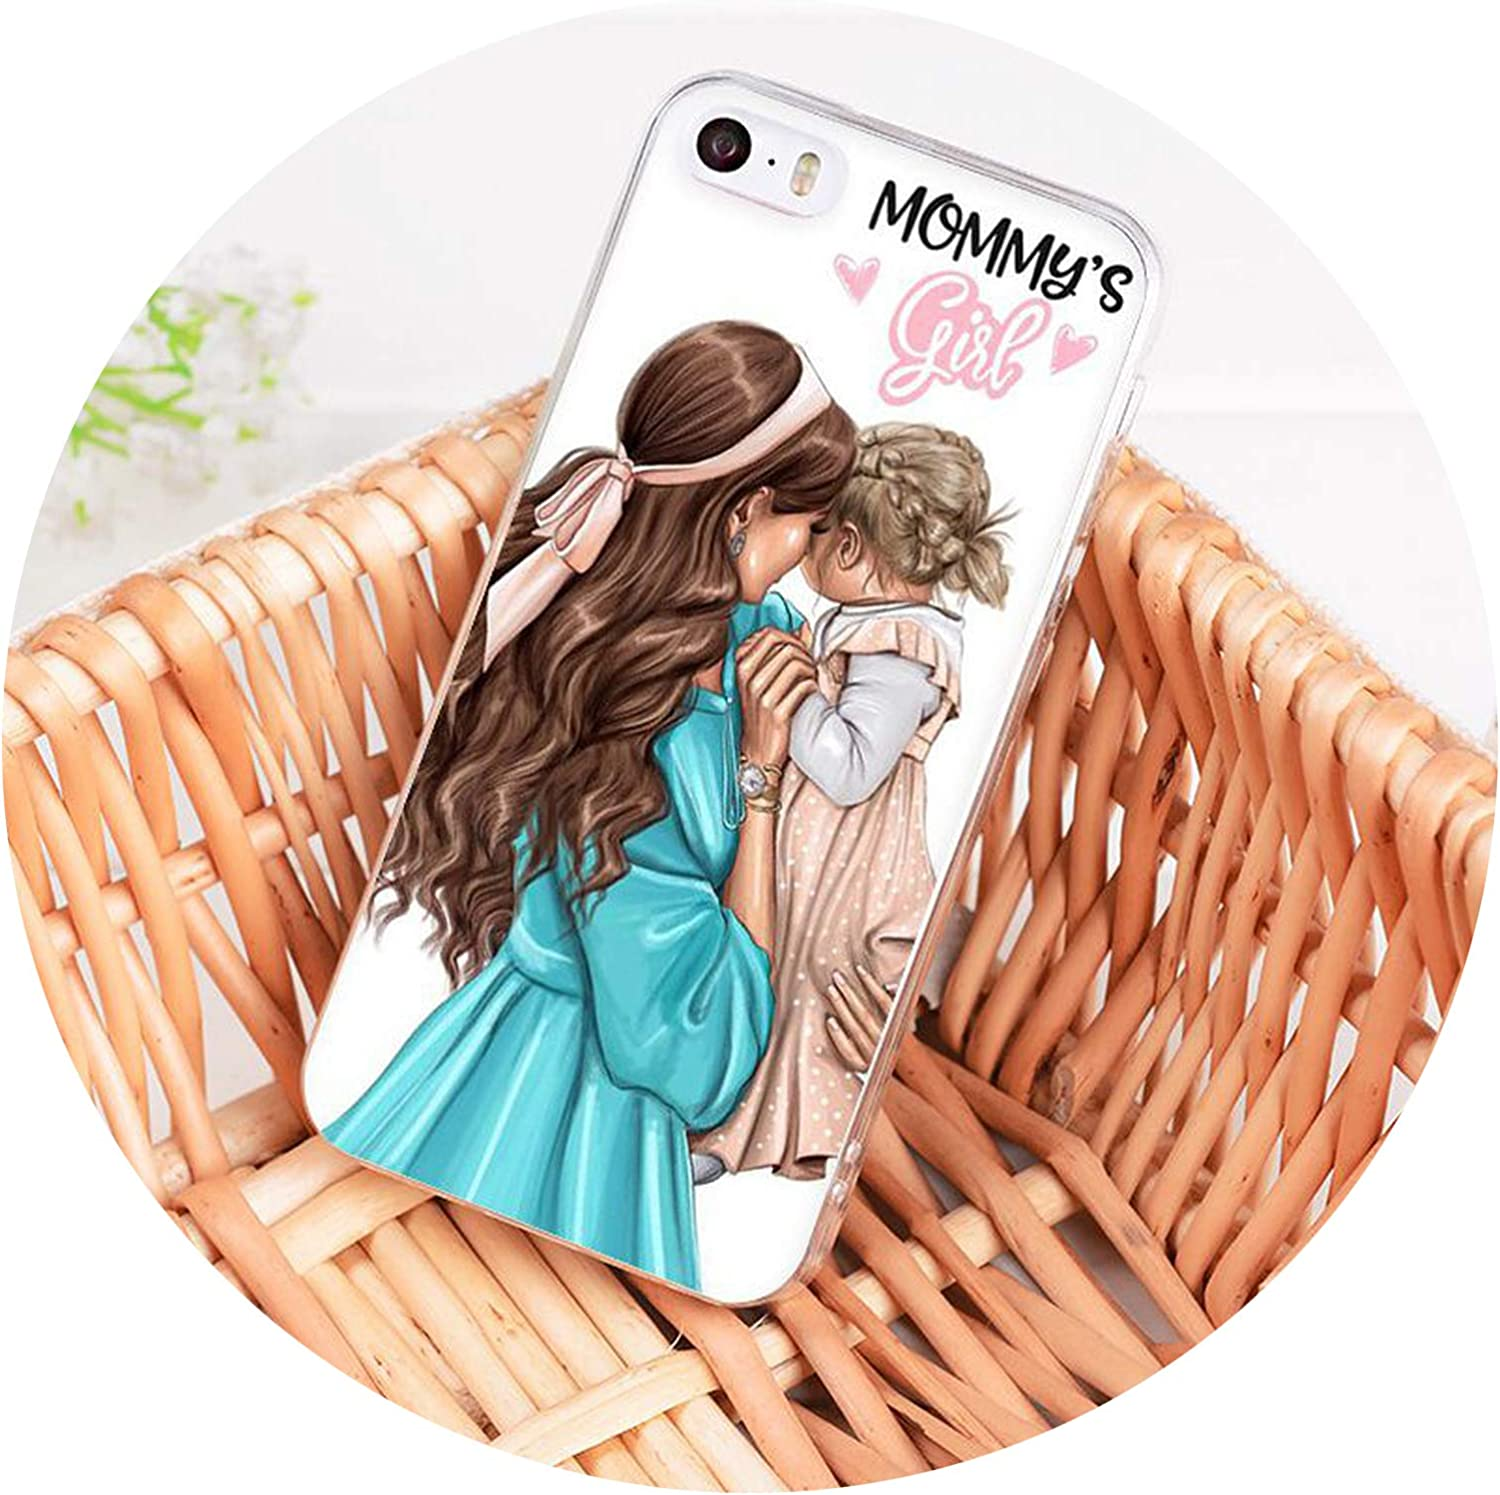 Black Brown Hair Baby Mom Girl Sup Dad Phone Case for iPhone 8 7 6 6S Plus X XS MAX 5 5S SE XR 10 Cover,A5,for iPhone 5 5s SE